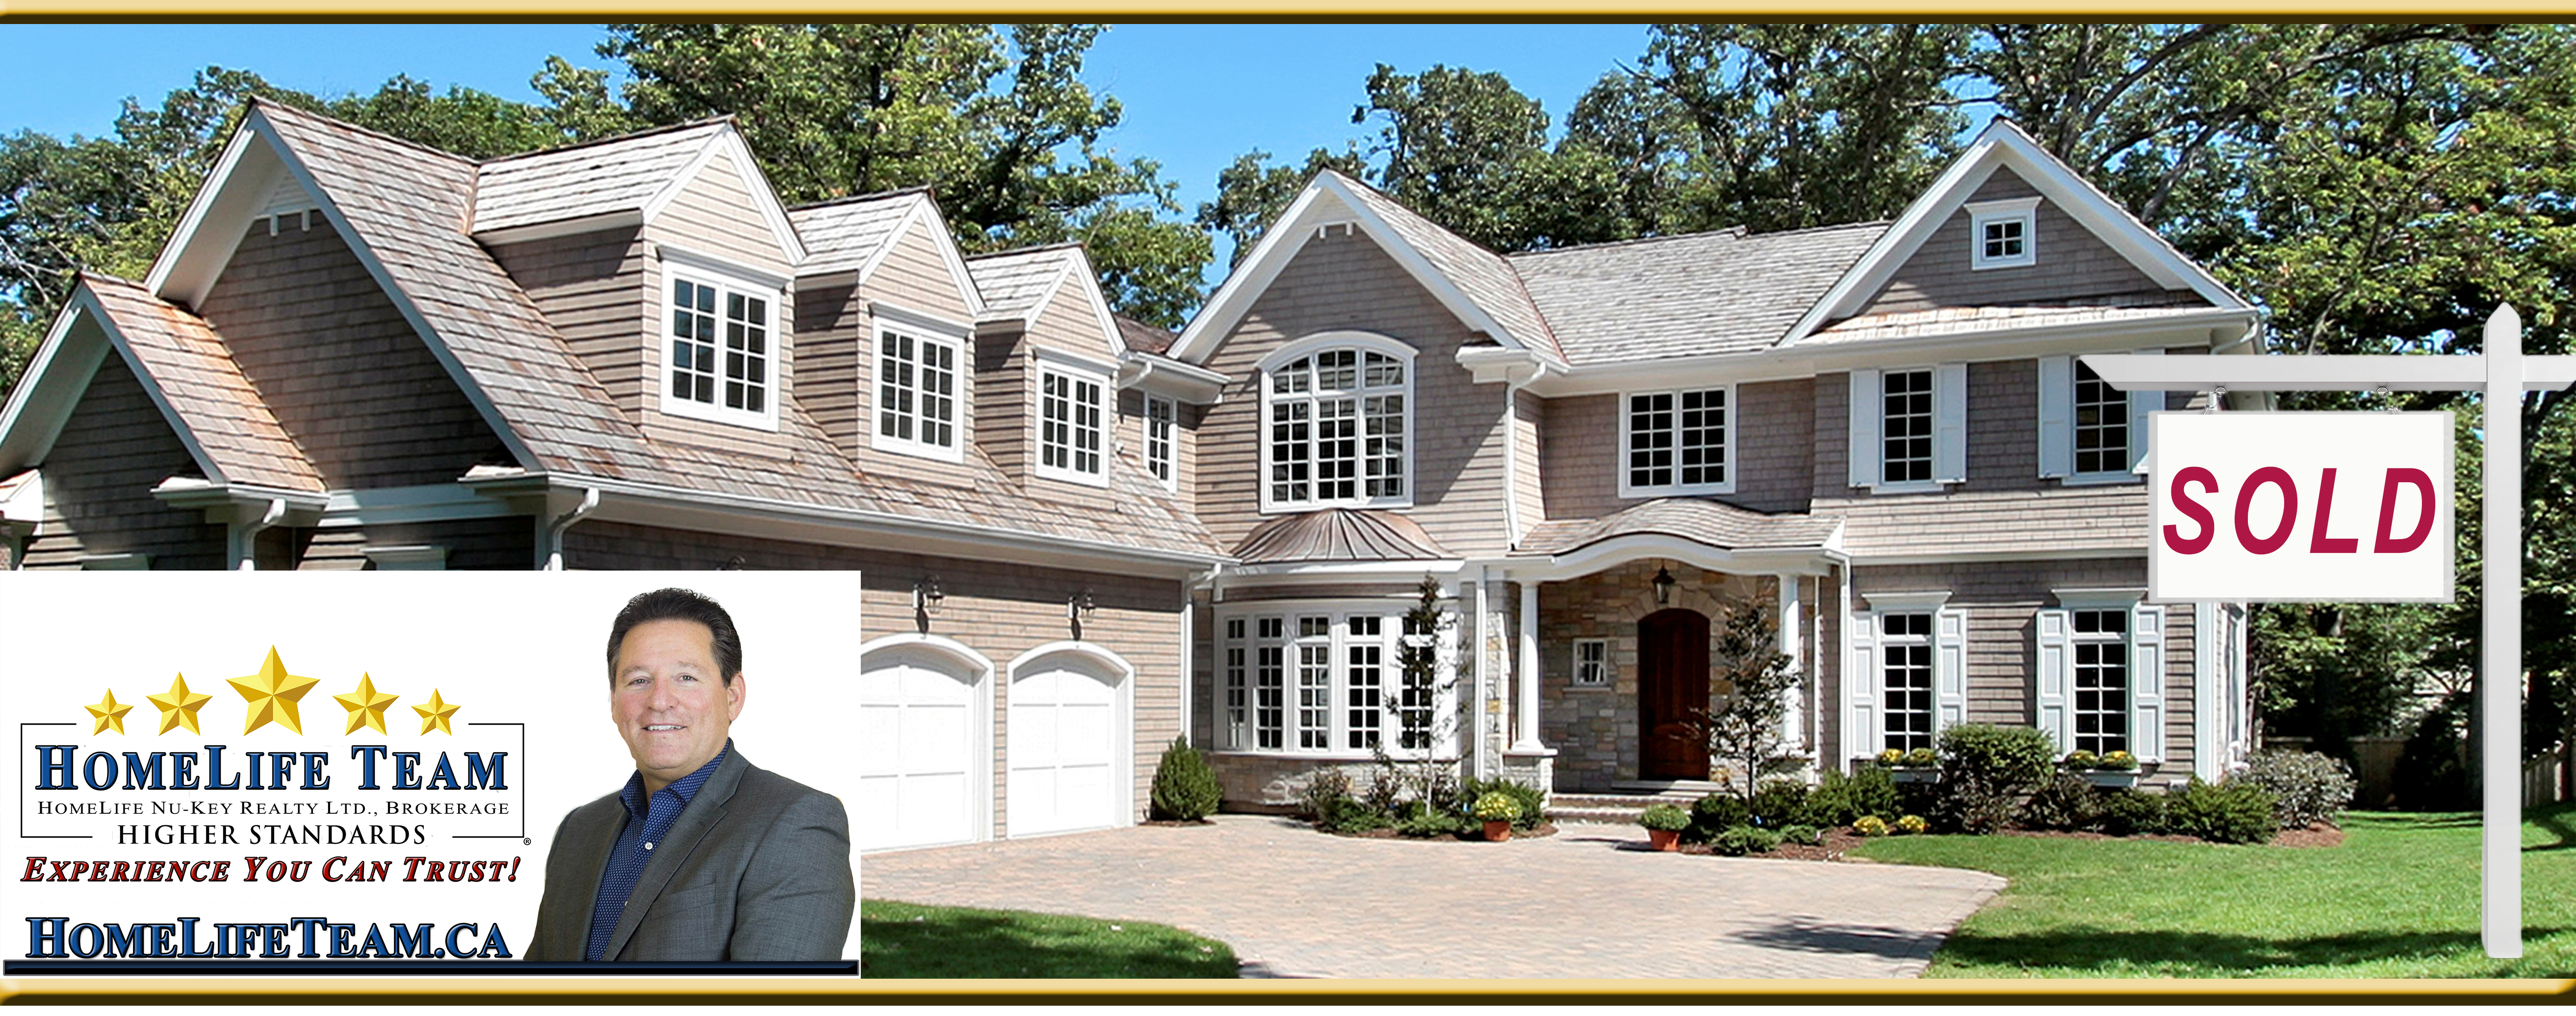 Luxury home banner -mike -sold sign.png